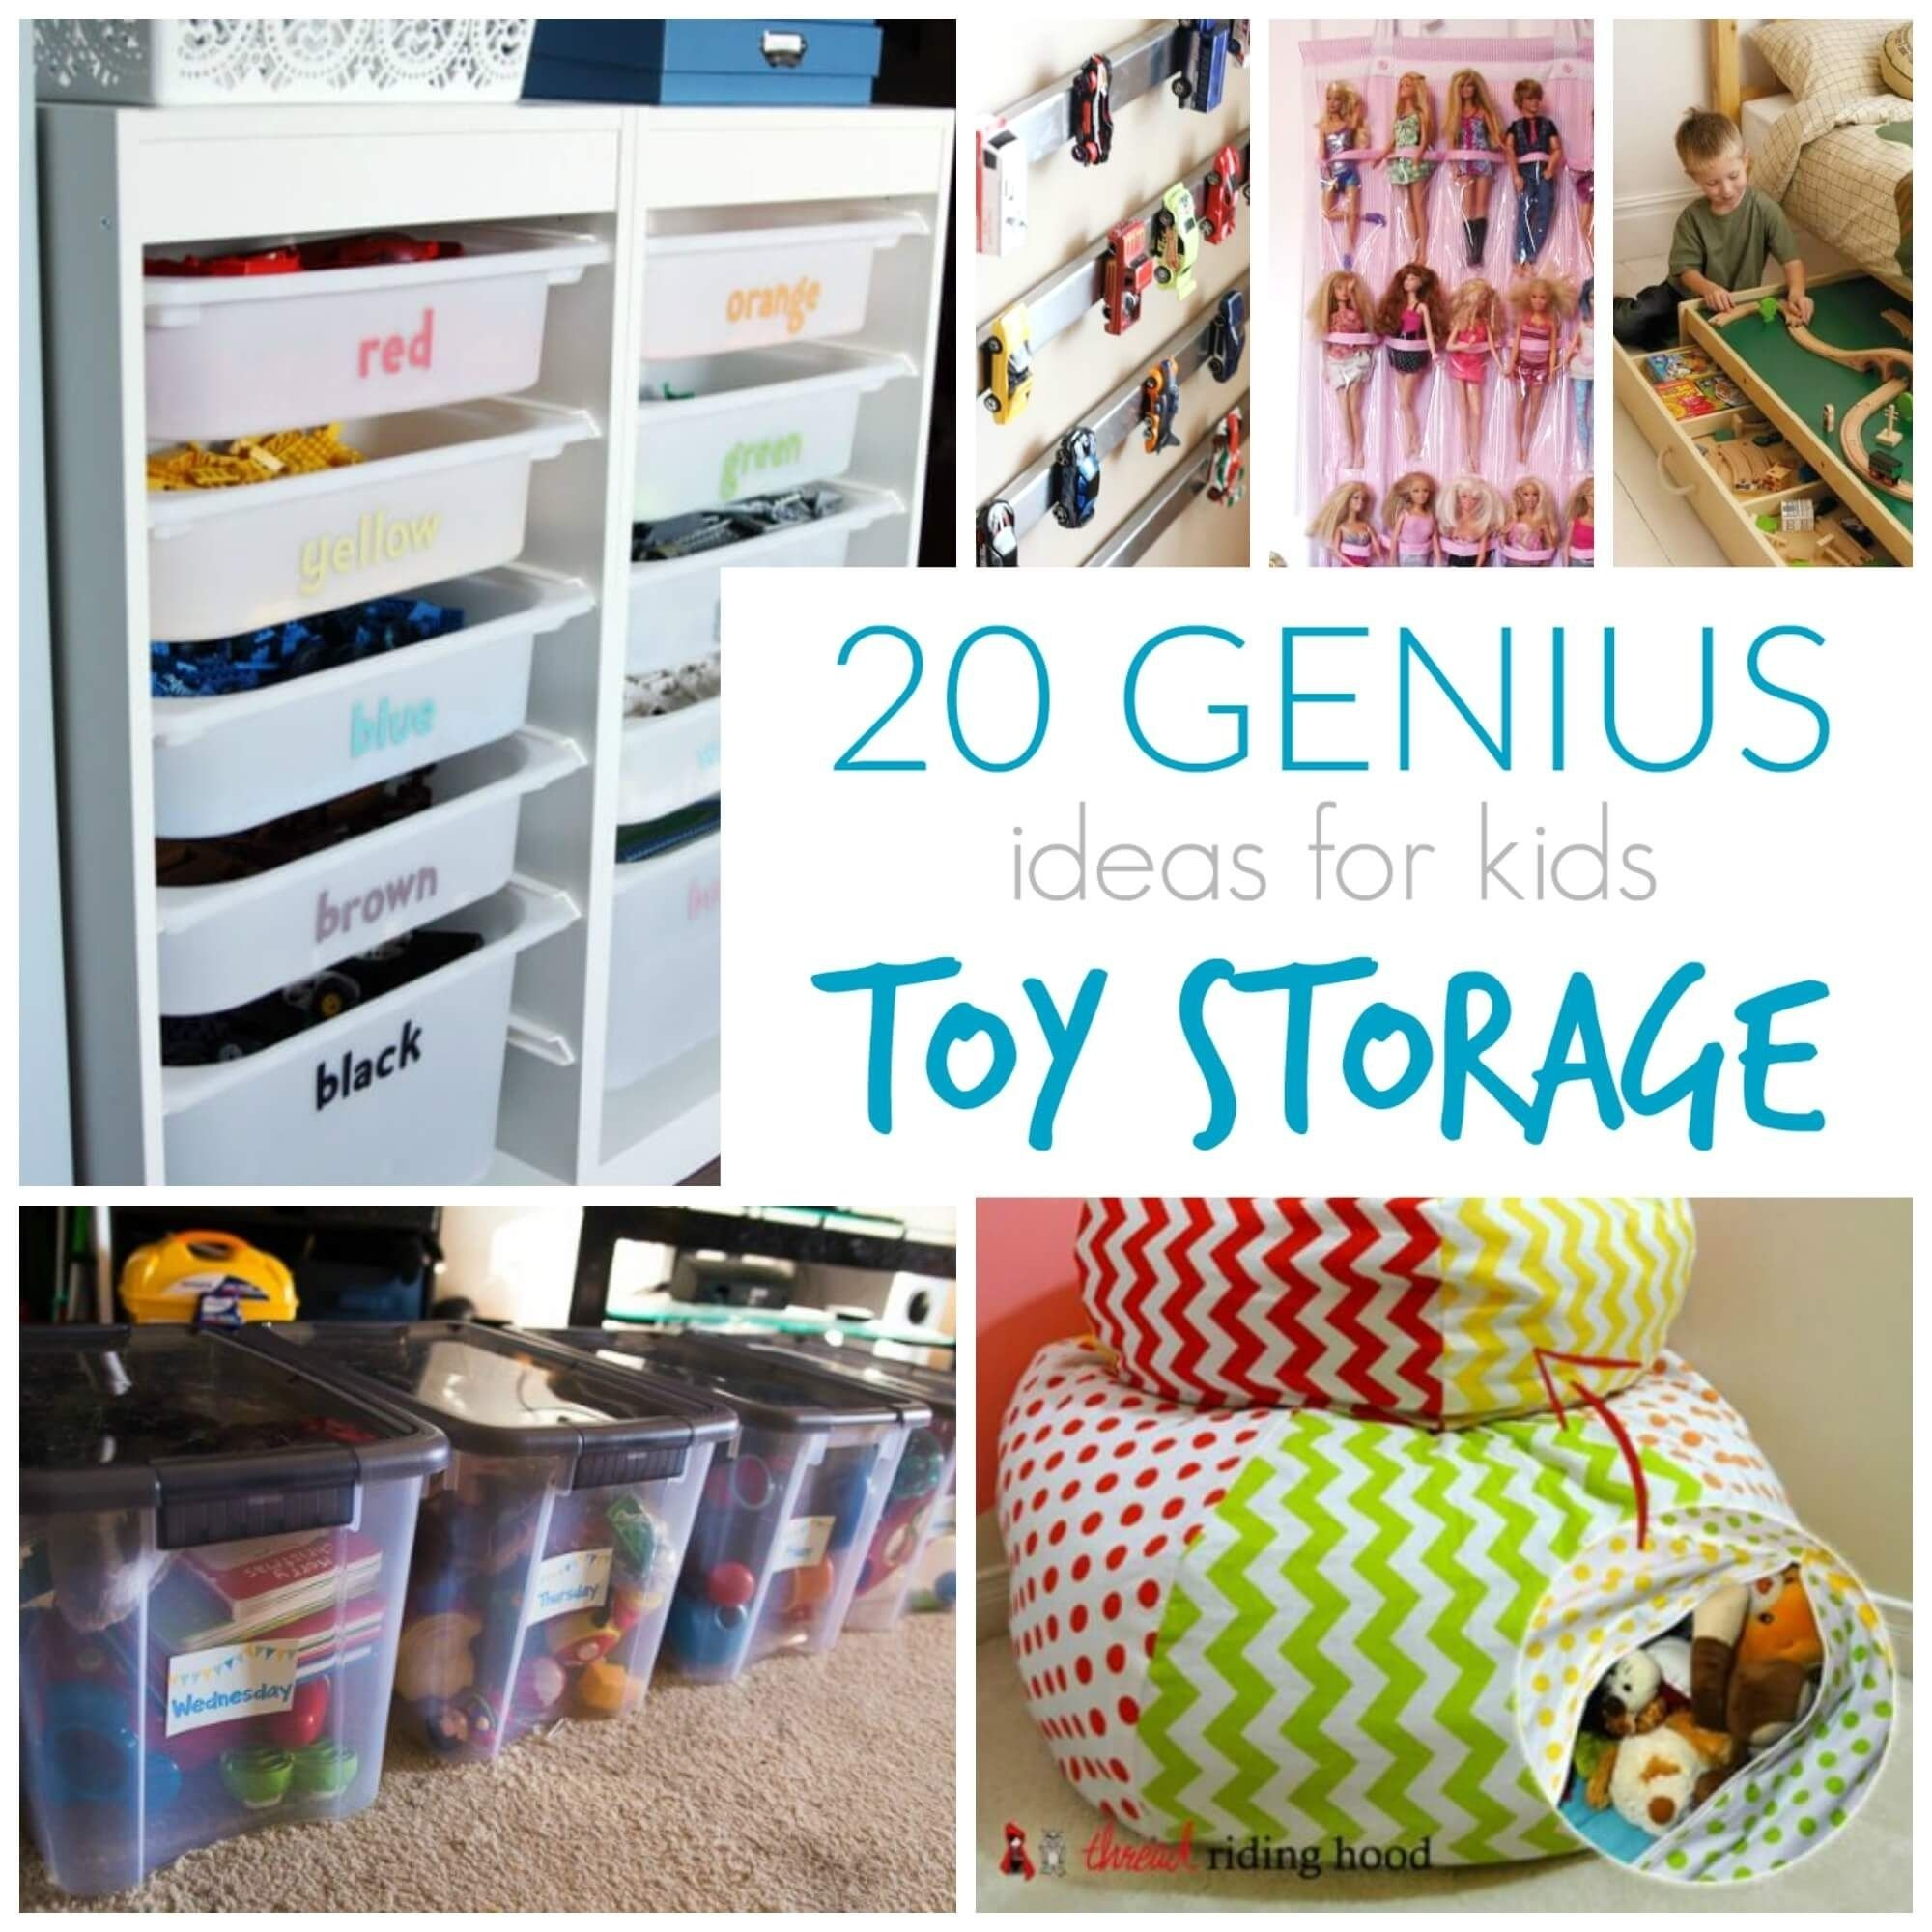 10 Gorgeous Storage Ideas For Kids Room toy storage ideas diy plans in a small space that your kids will 2020